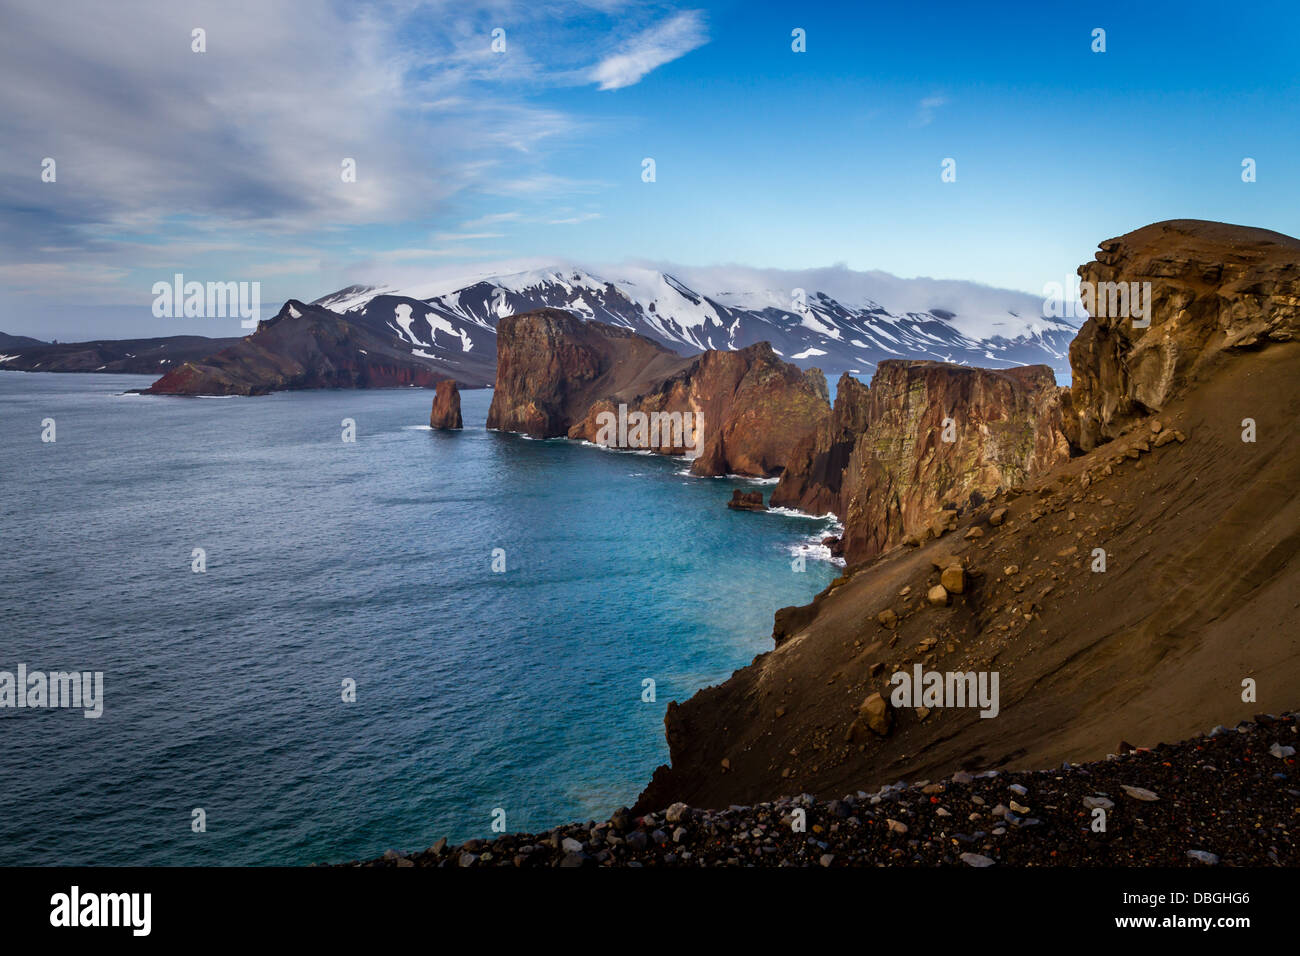 The entrance to the natural harbour and live volcano of Deception Island, Antarctica - Stock Image